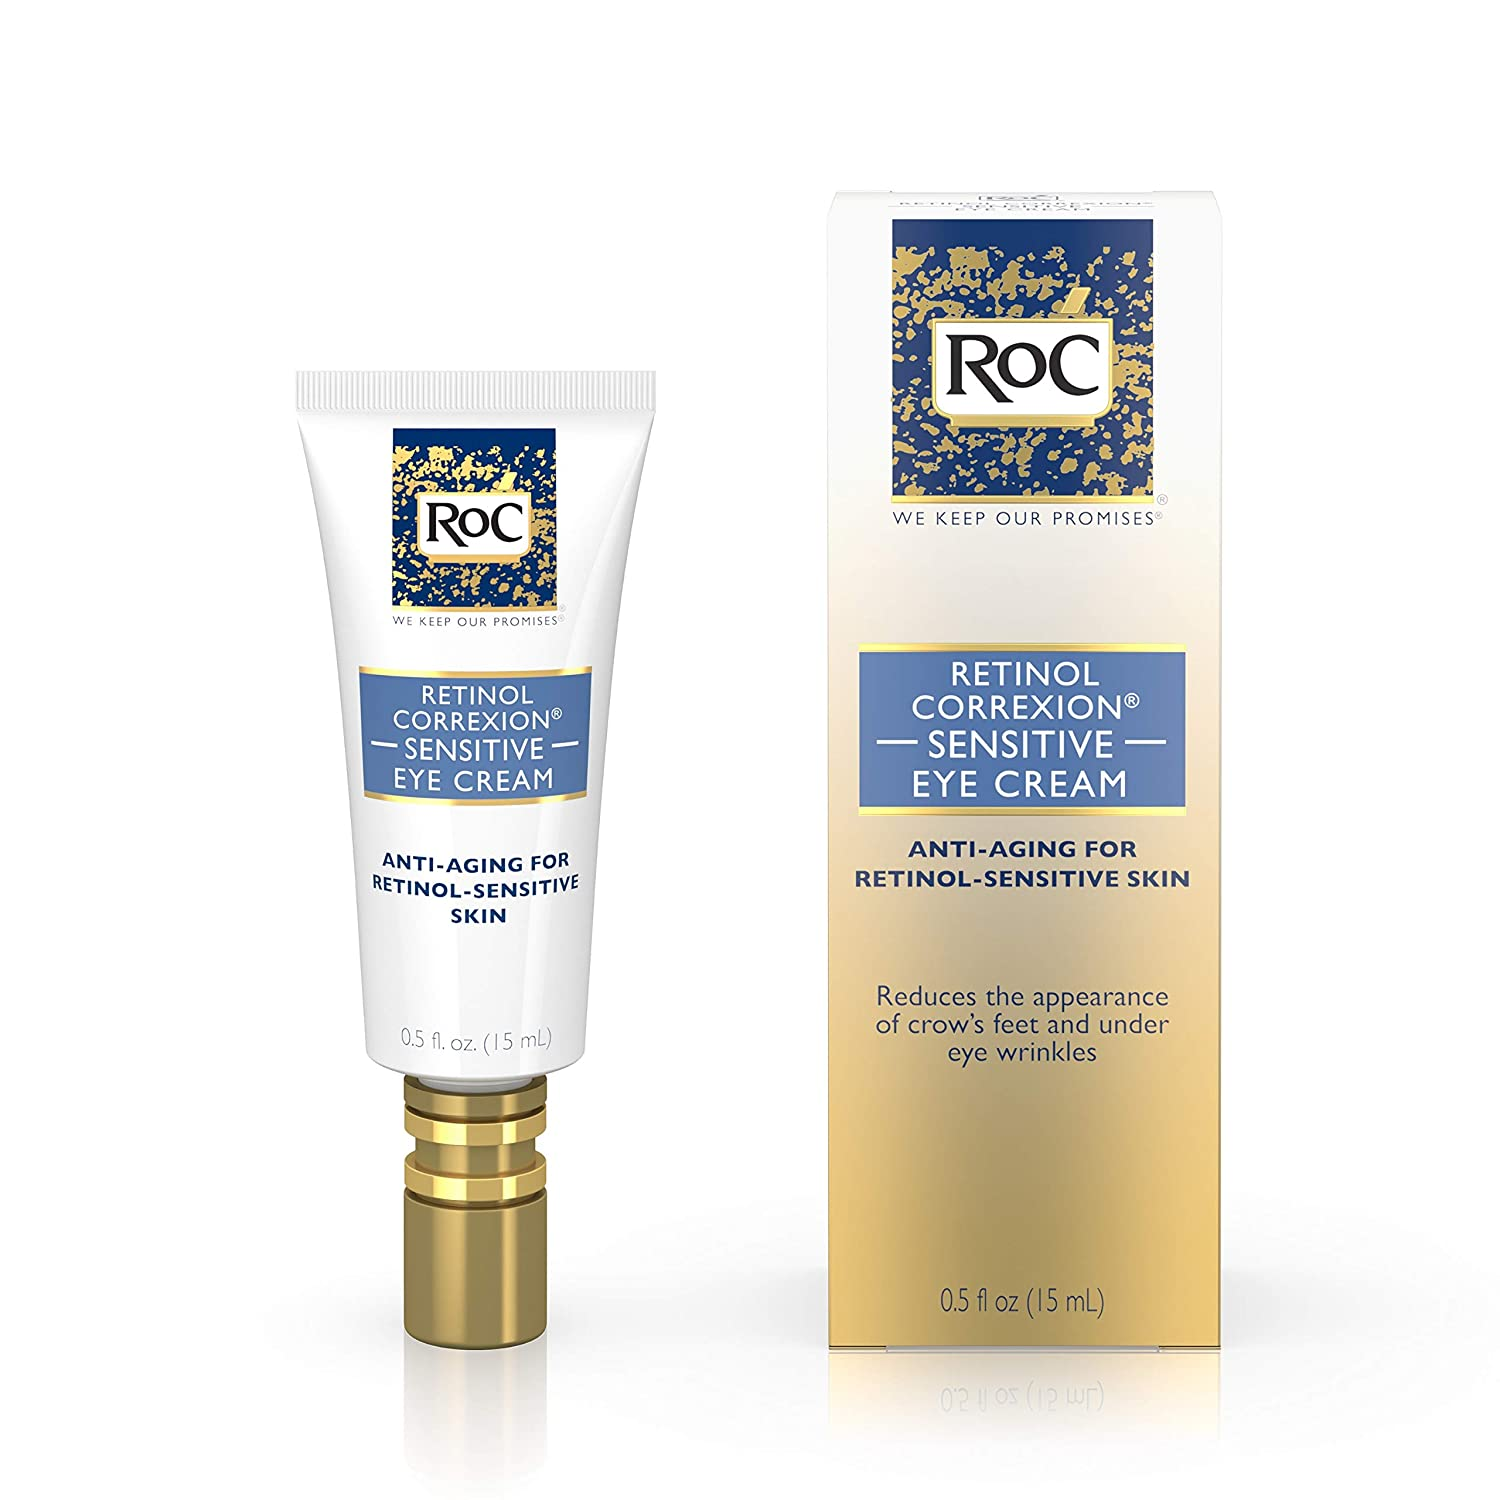 RoC Retinol Correxion Anti-Aging Eye Cream for Sensitive Skin, Anti-Wrinkle Treatment with milder retinol formula that helps condition skin to retinoids.5 fl. oz